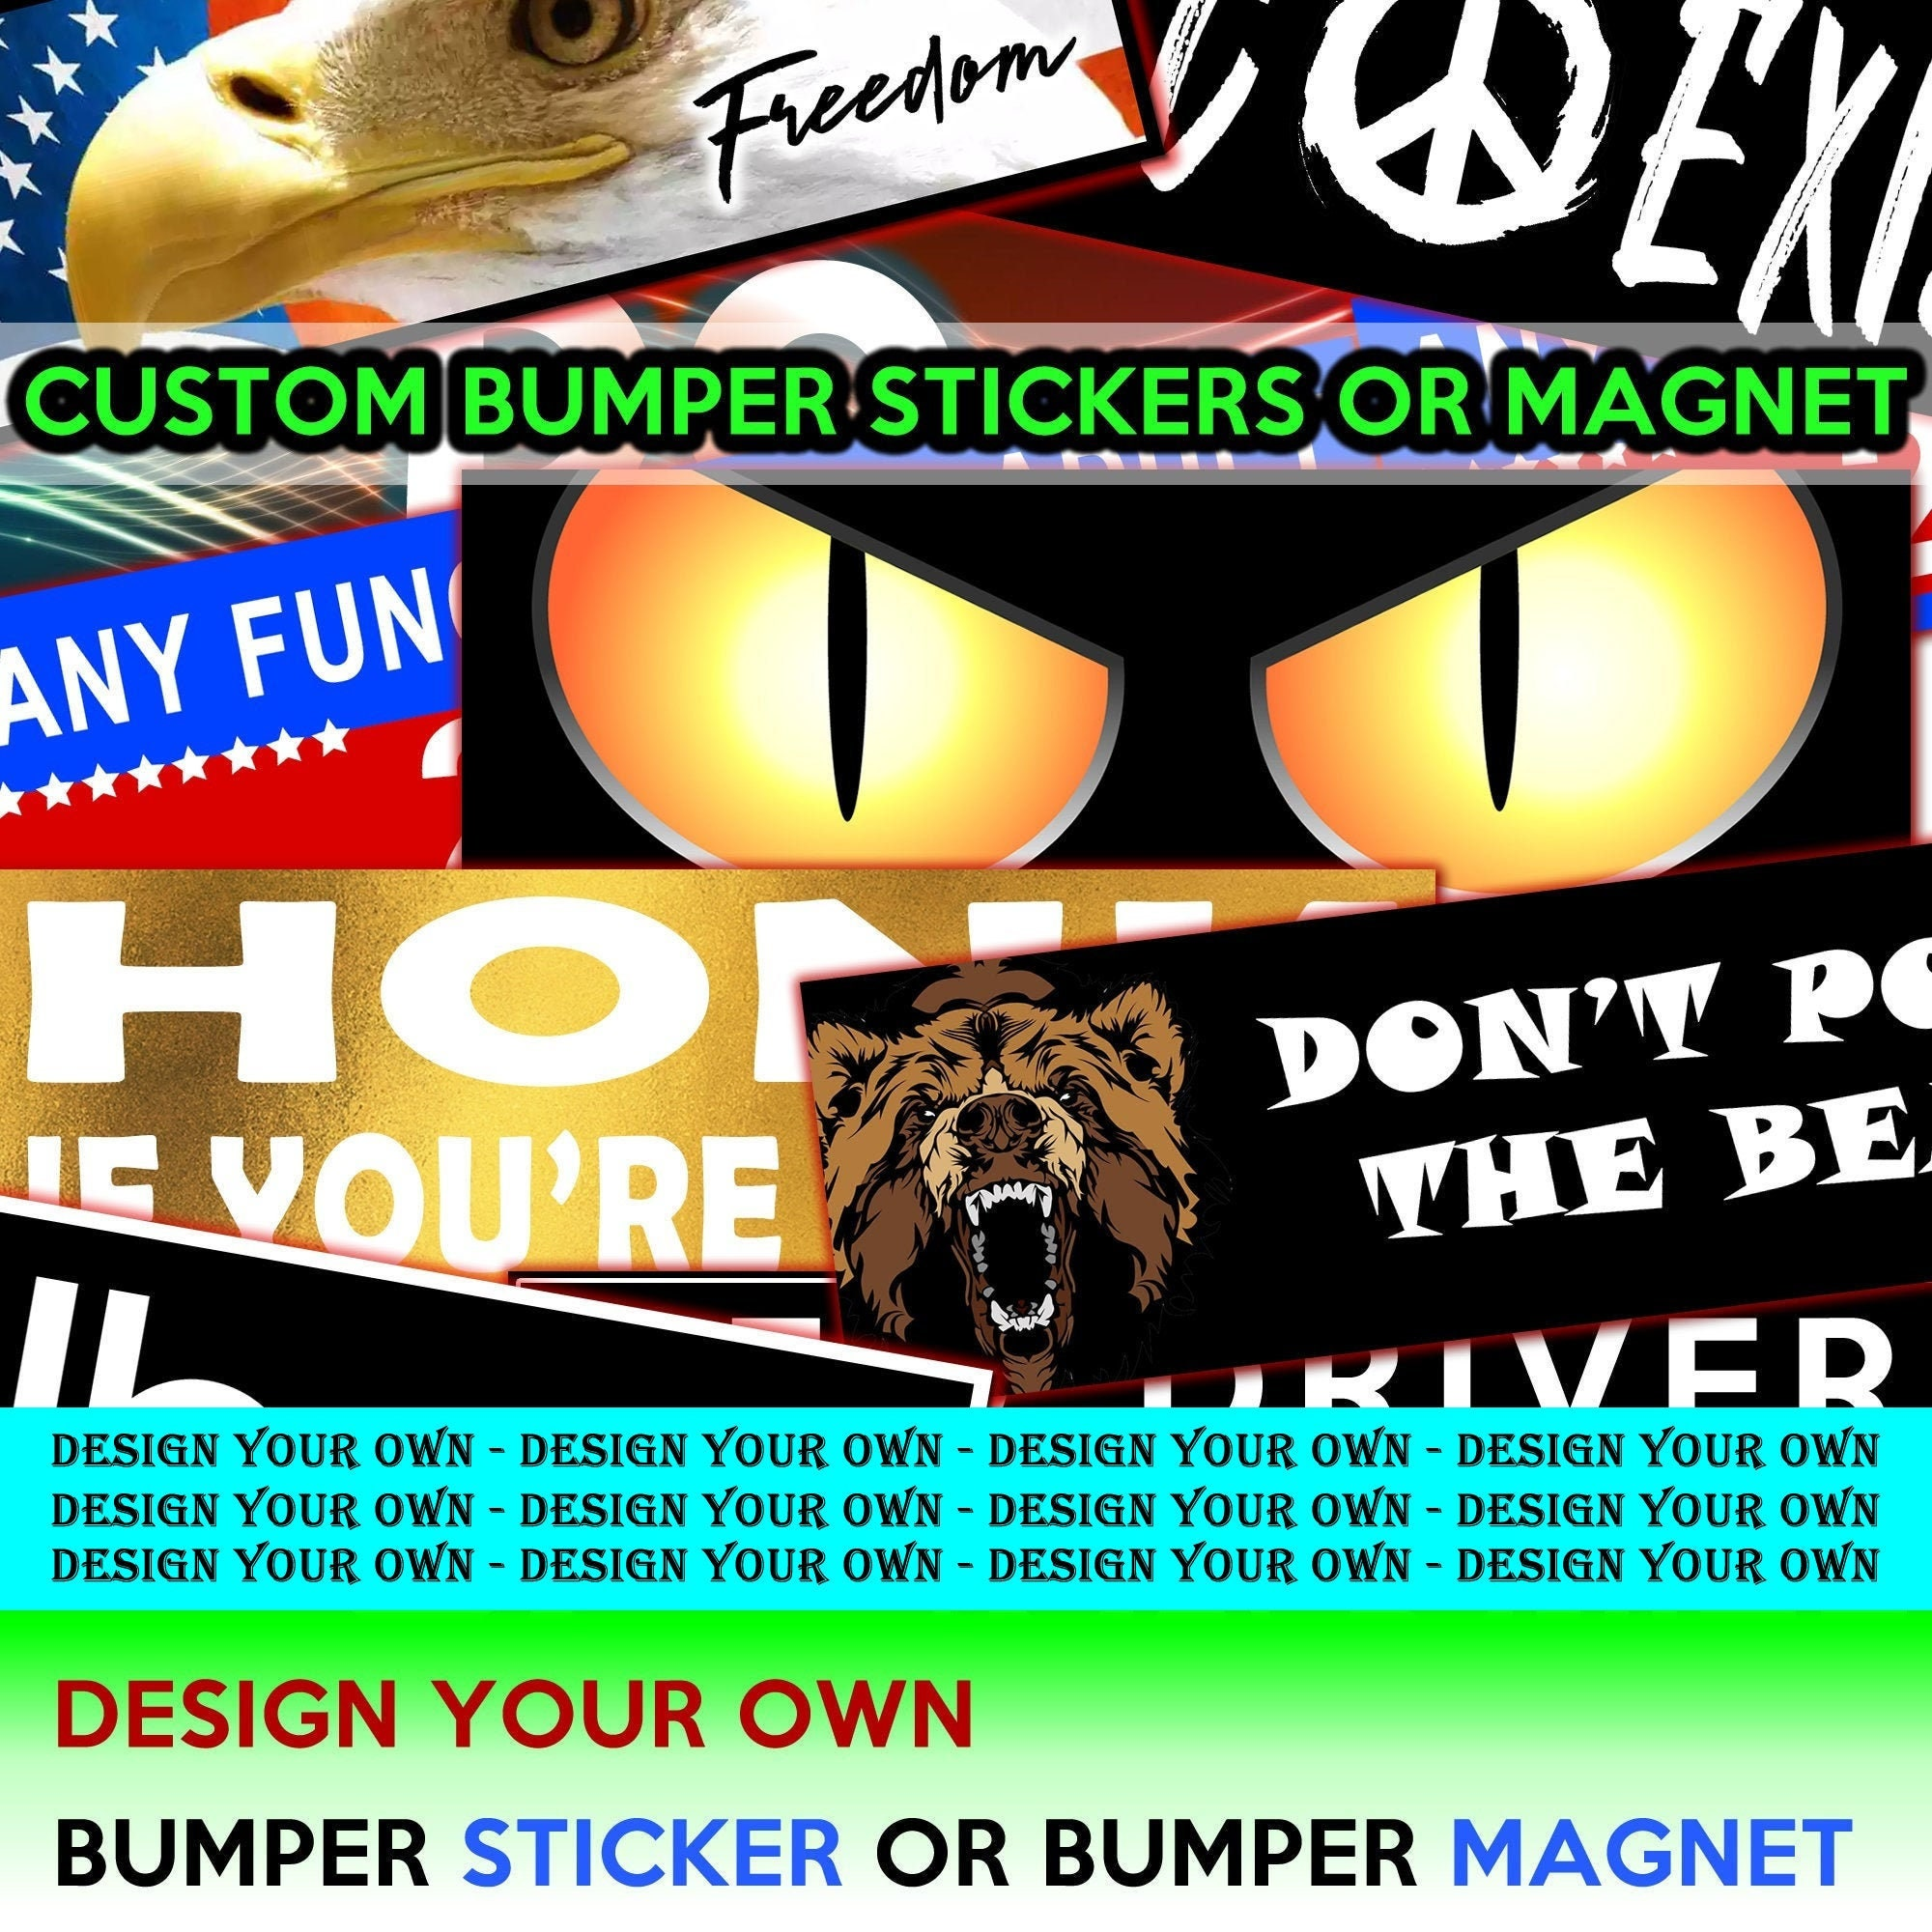 CAD$9.74 - Custom bumper stickers or magnets, create your own we customize your own 10 x 3 Sticker Magnet or bumper sticker or bumper magnet